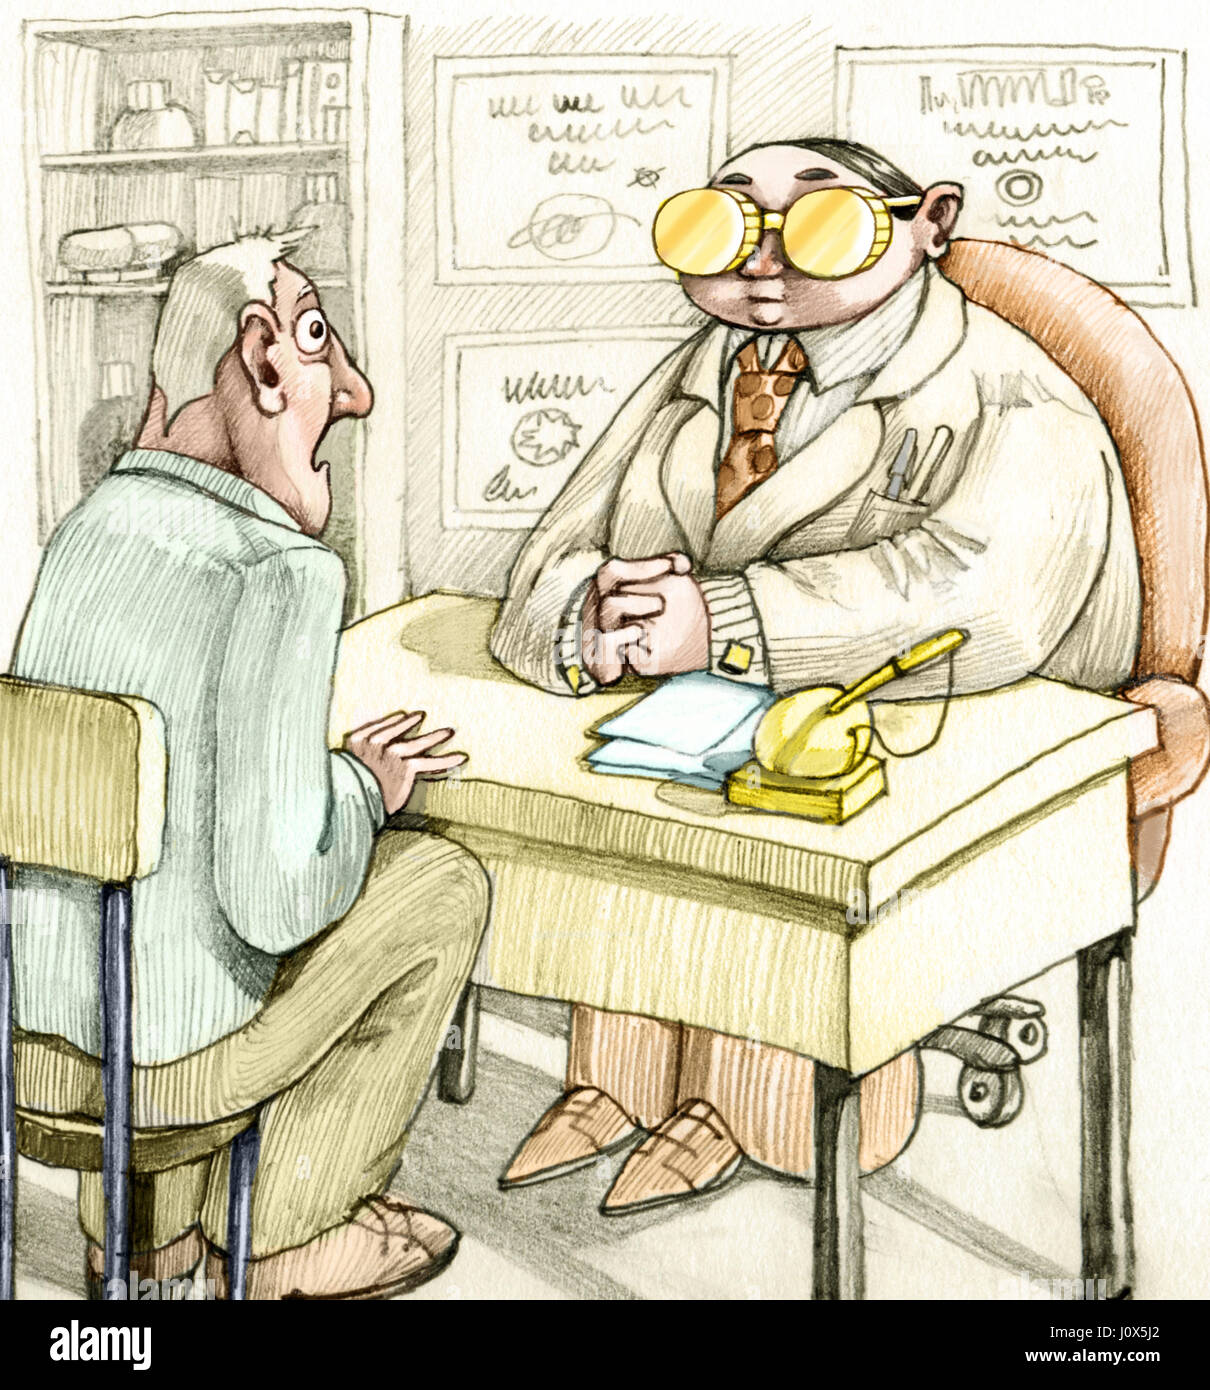 a patient amazed at the desk of a famous doctor, the doctor has two gold coins instead of spectacles - Stock Image